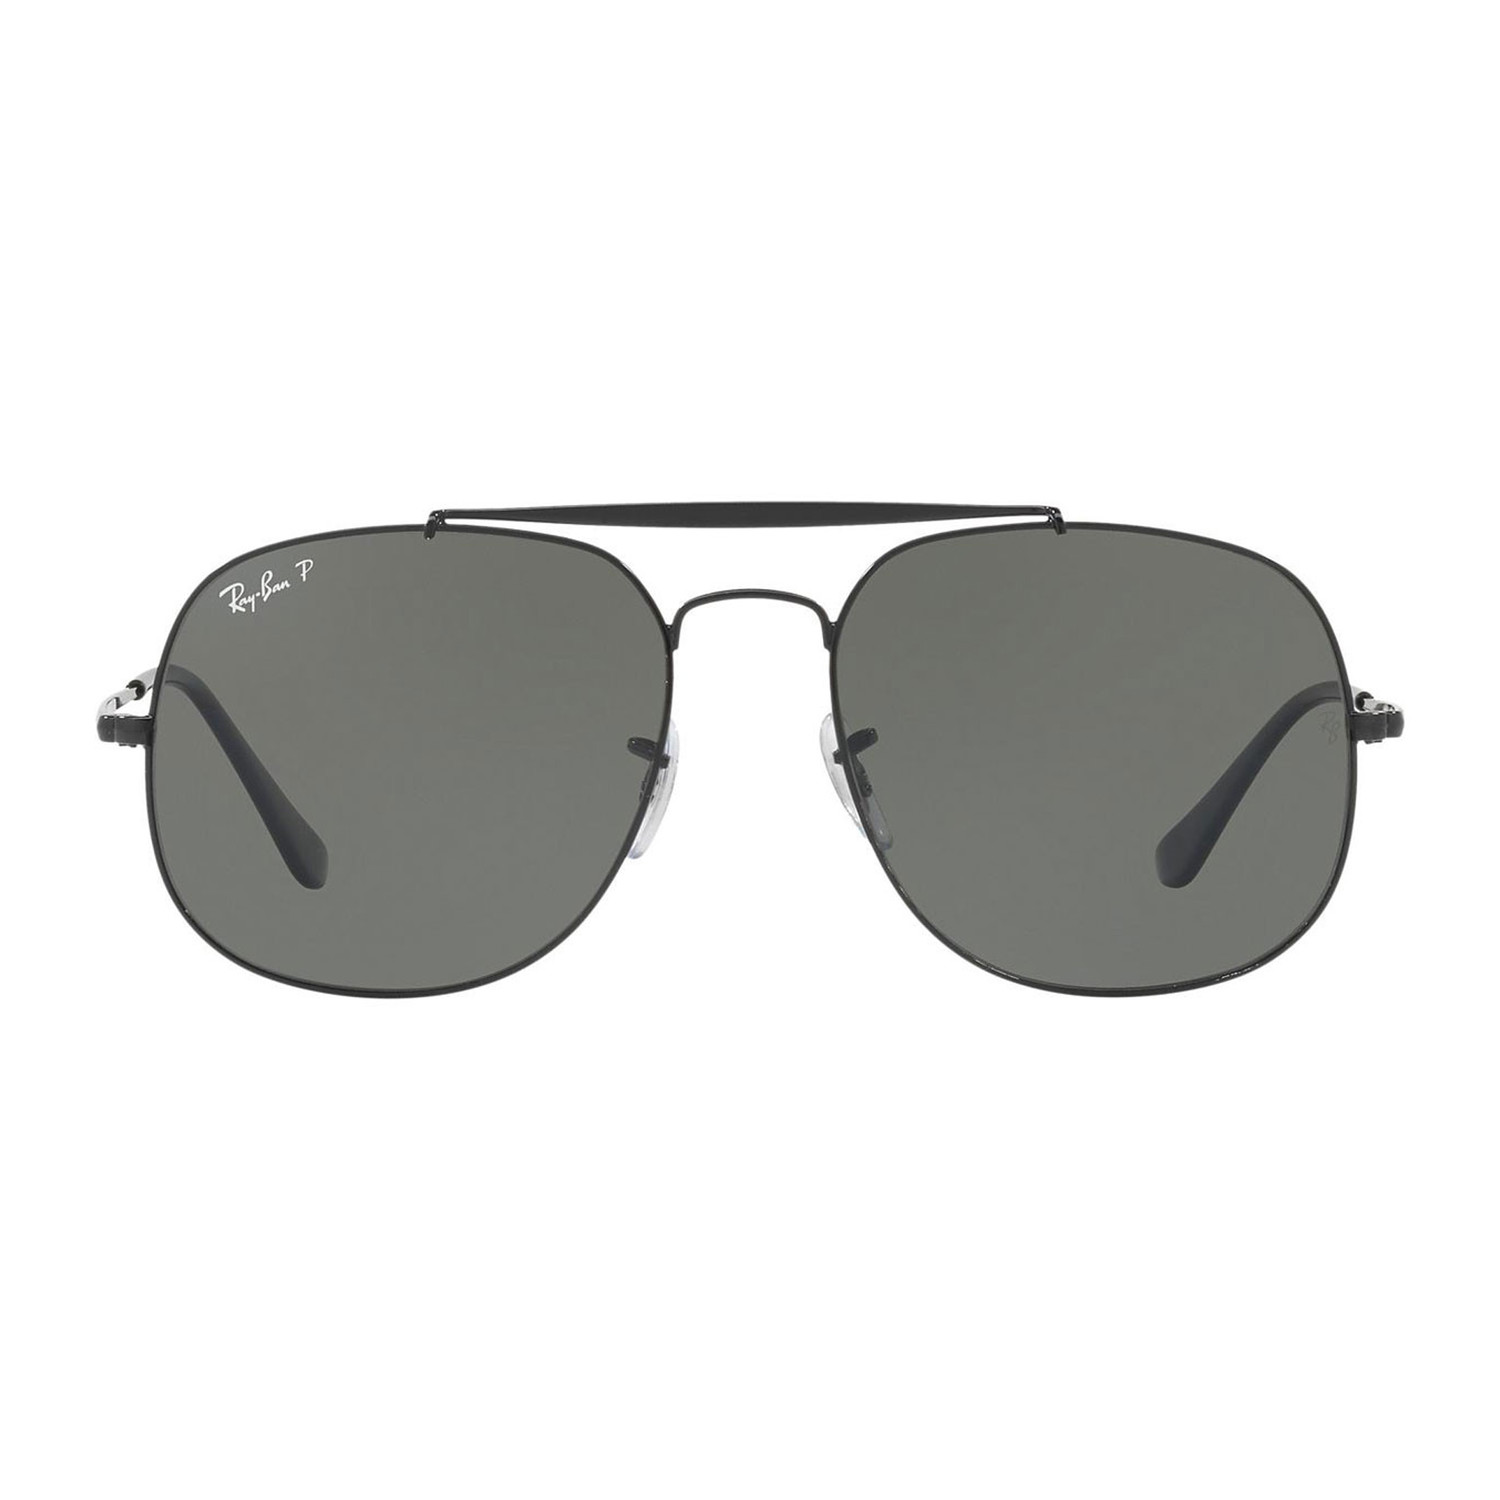 06eeb7bb57b 19255fc63bb3f15dbd265edd1d12c1f8 medium · General Metal Aviator Sunglasses  ...